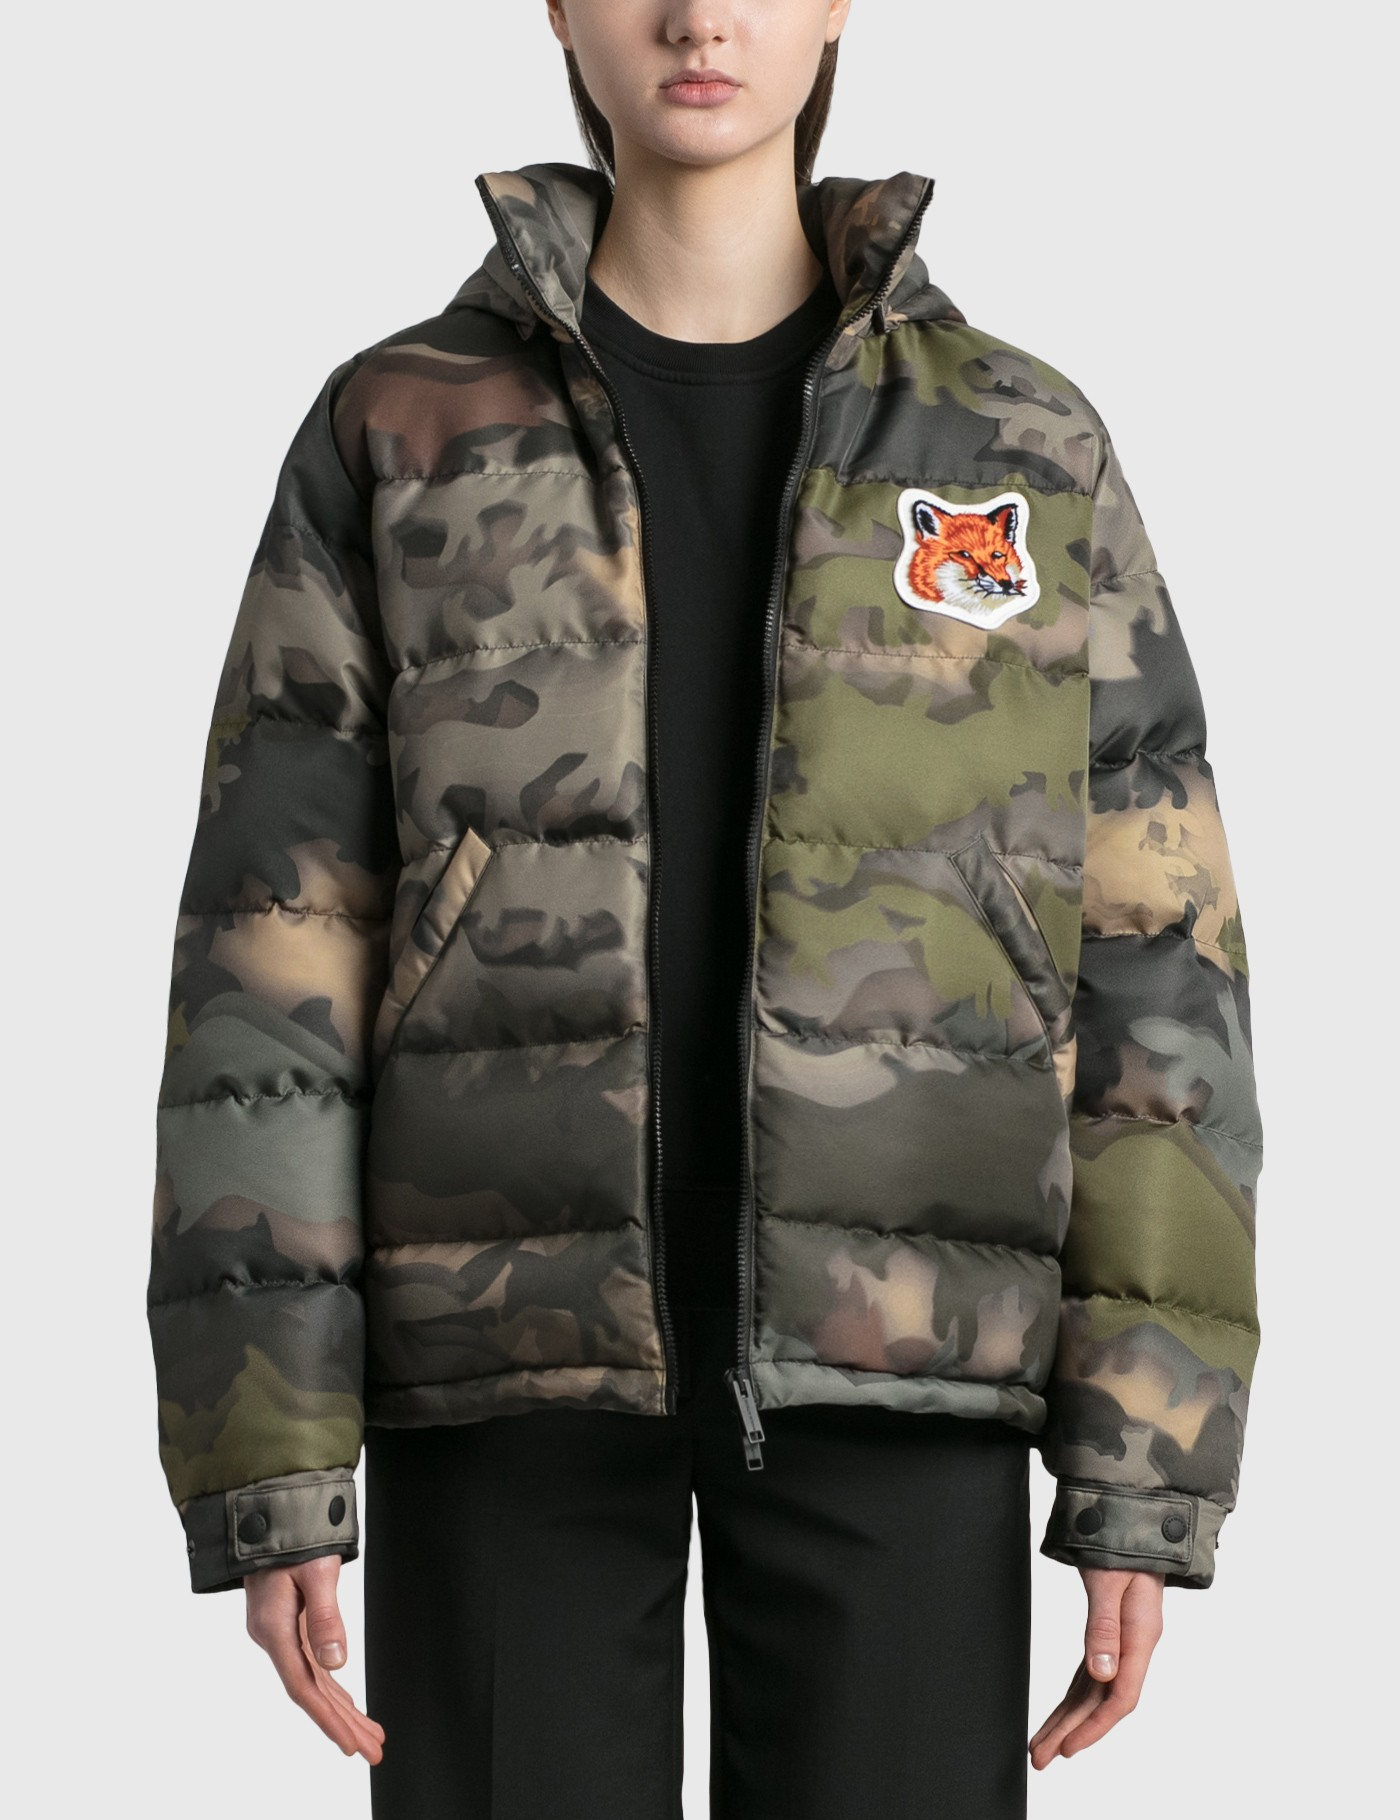 Maison Kitsuné Downs VELVET FOX HEAD PATCH SHORT DOWN JACKET